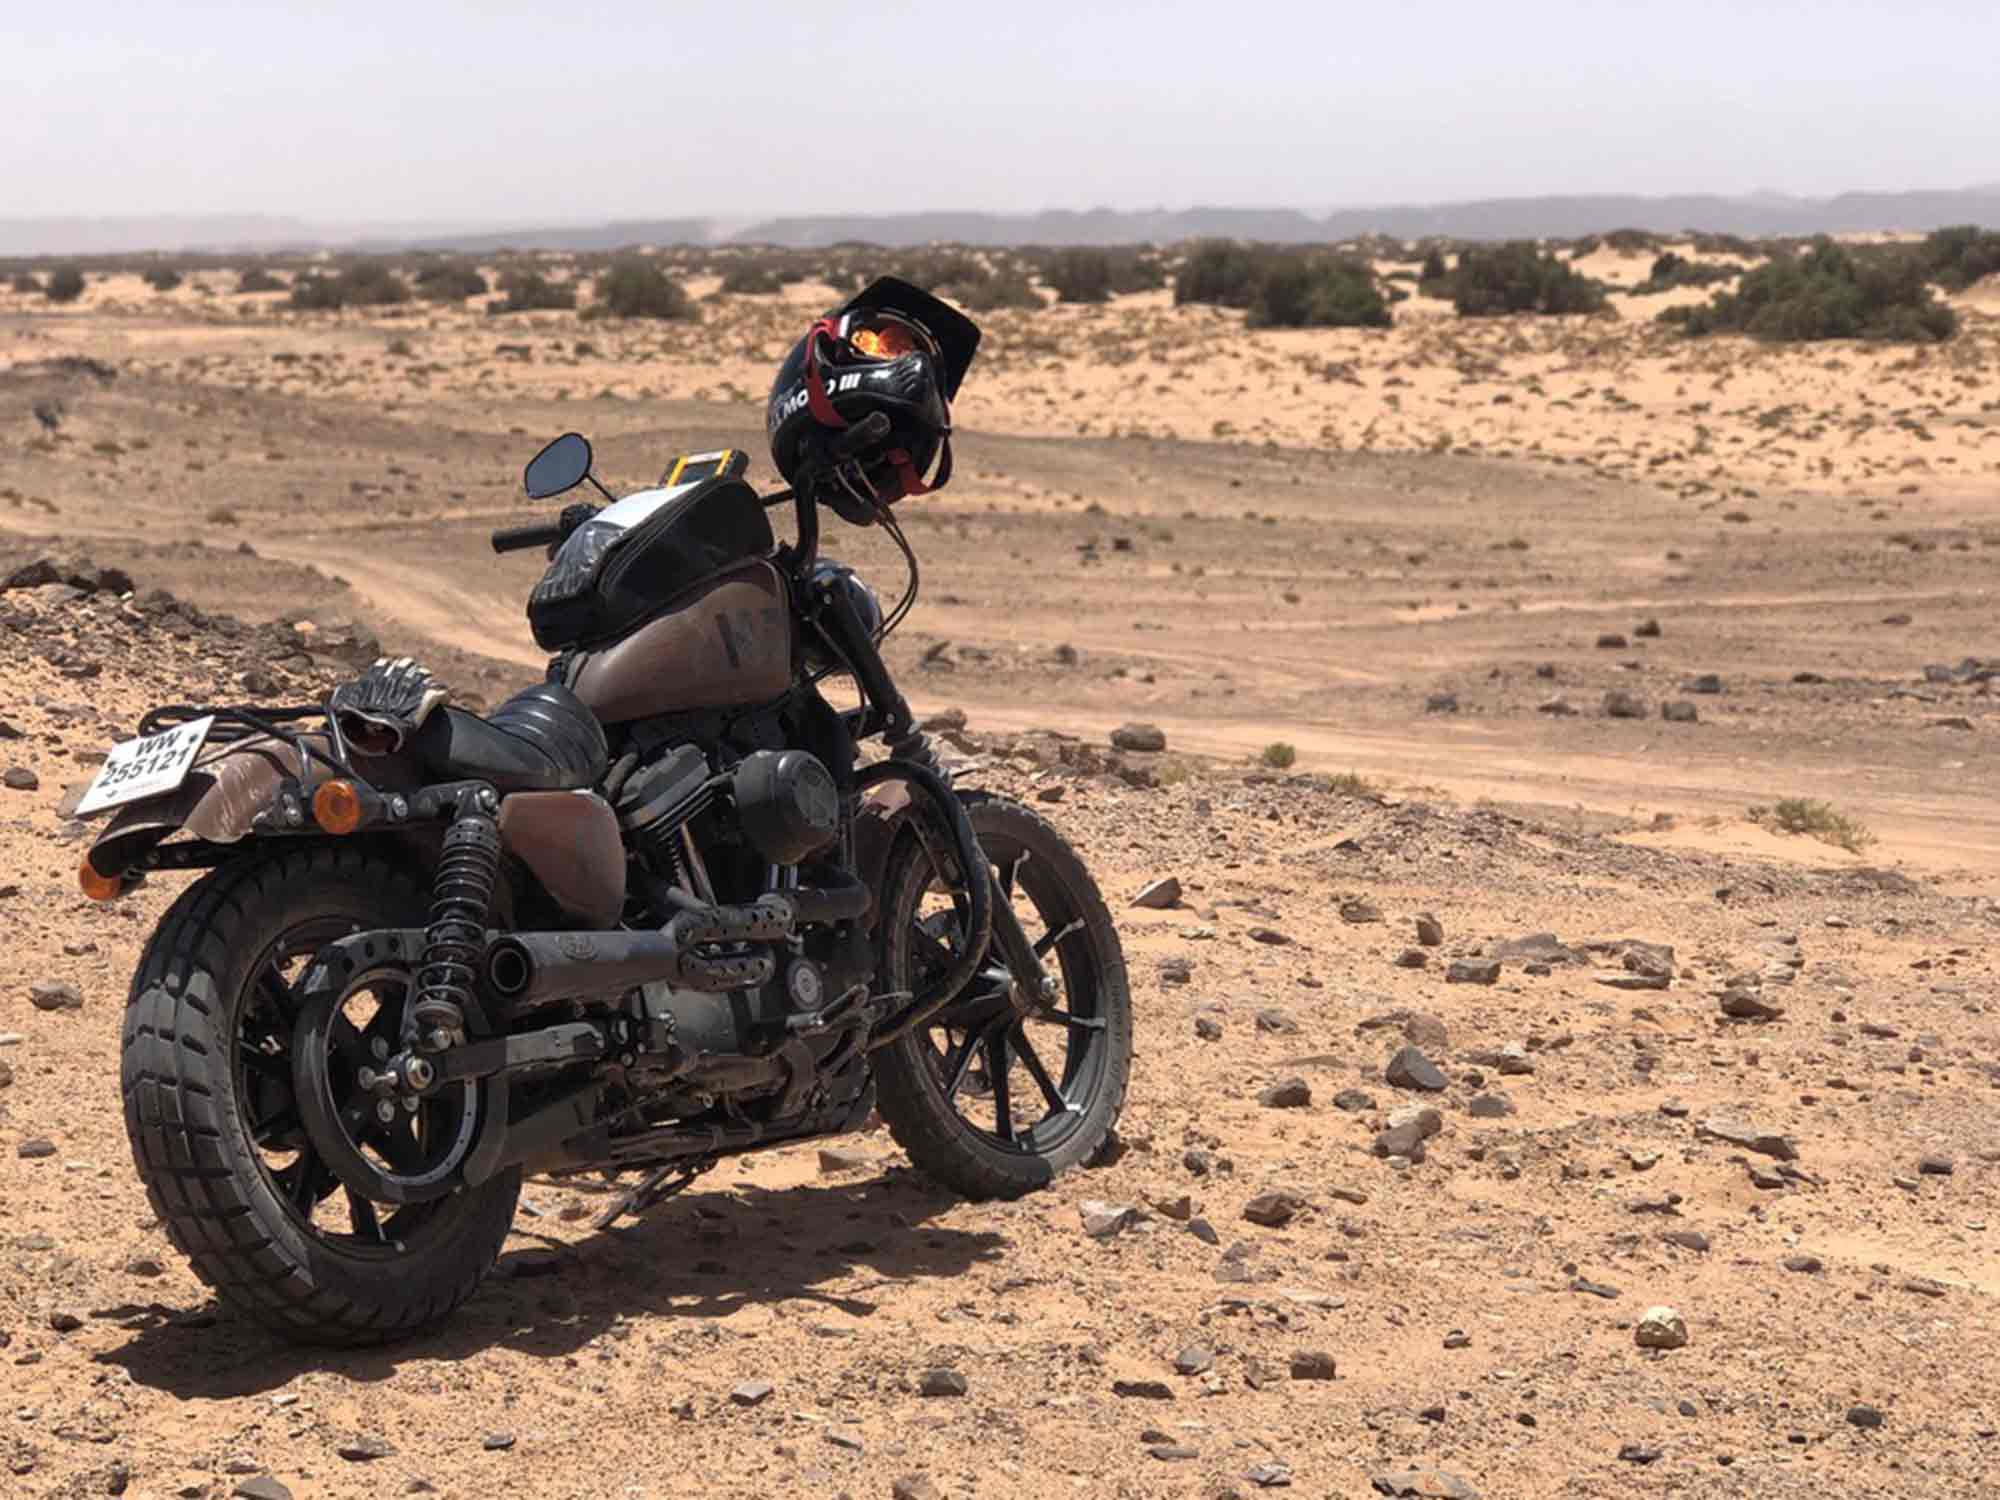 """""""All that the light touches…"""" My Harley-Davidson Nightster 883 surveying the Moroccan desert."""